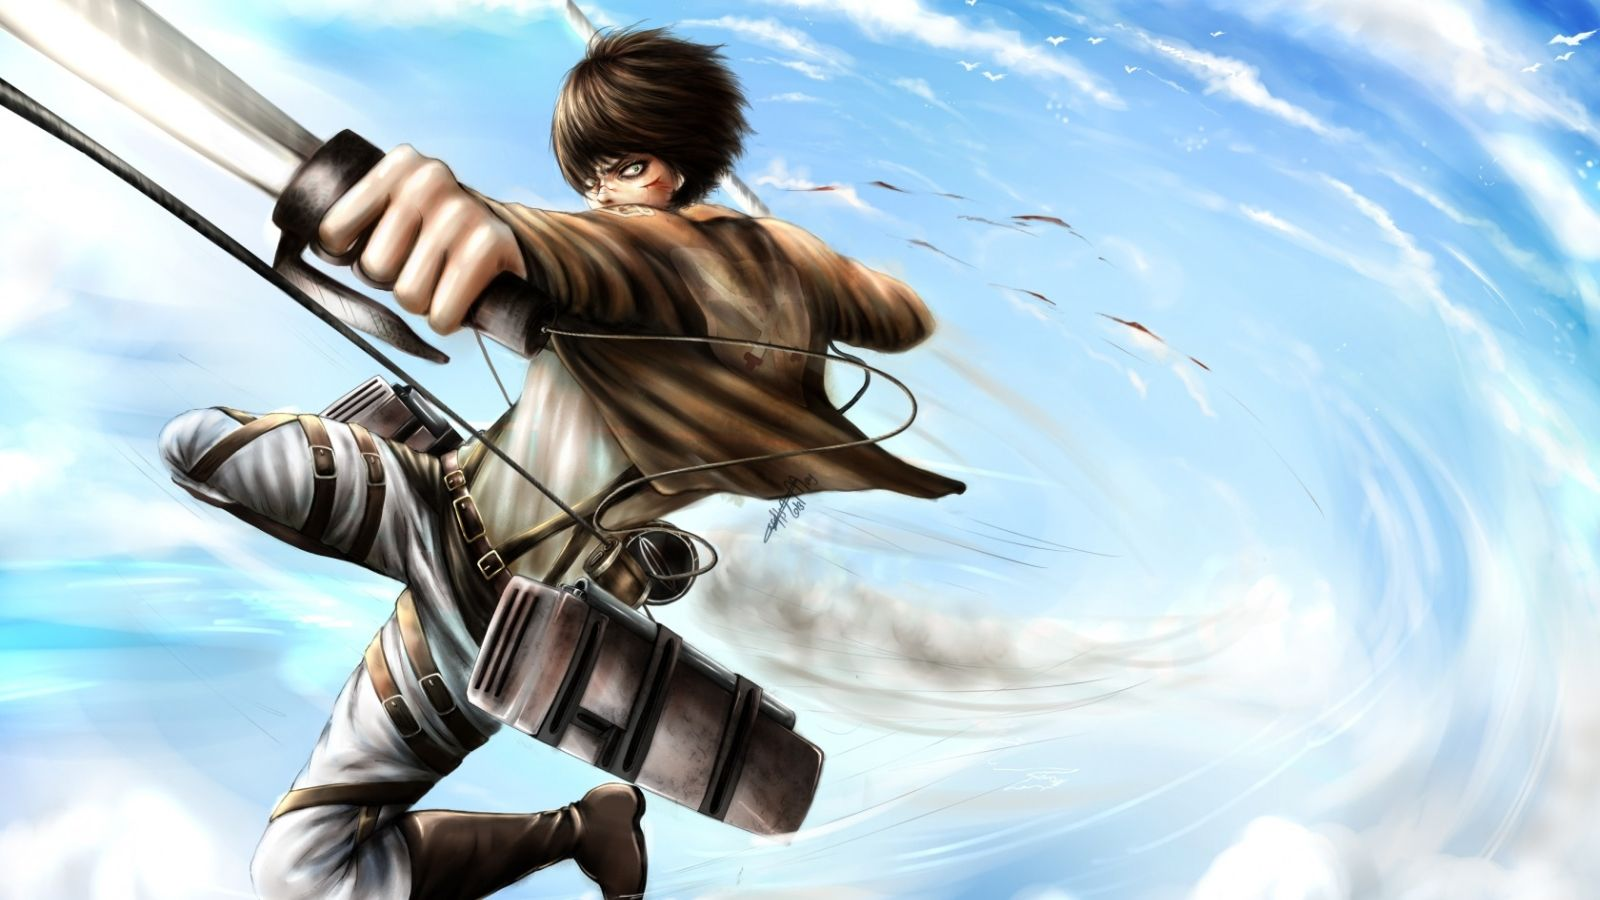 Attack On Titan Anime 4k PC Wallpapers - Wallpaper Cave